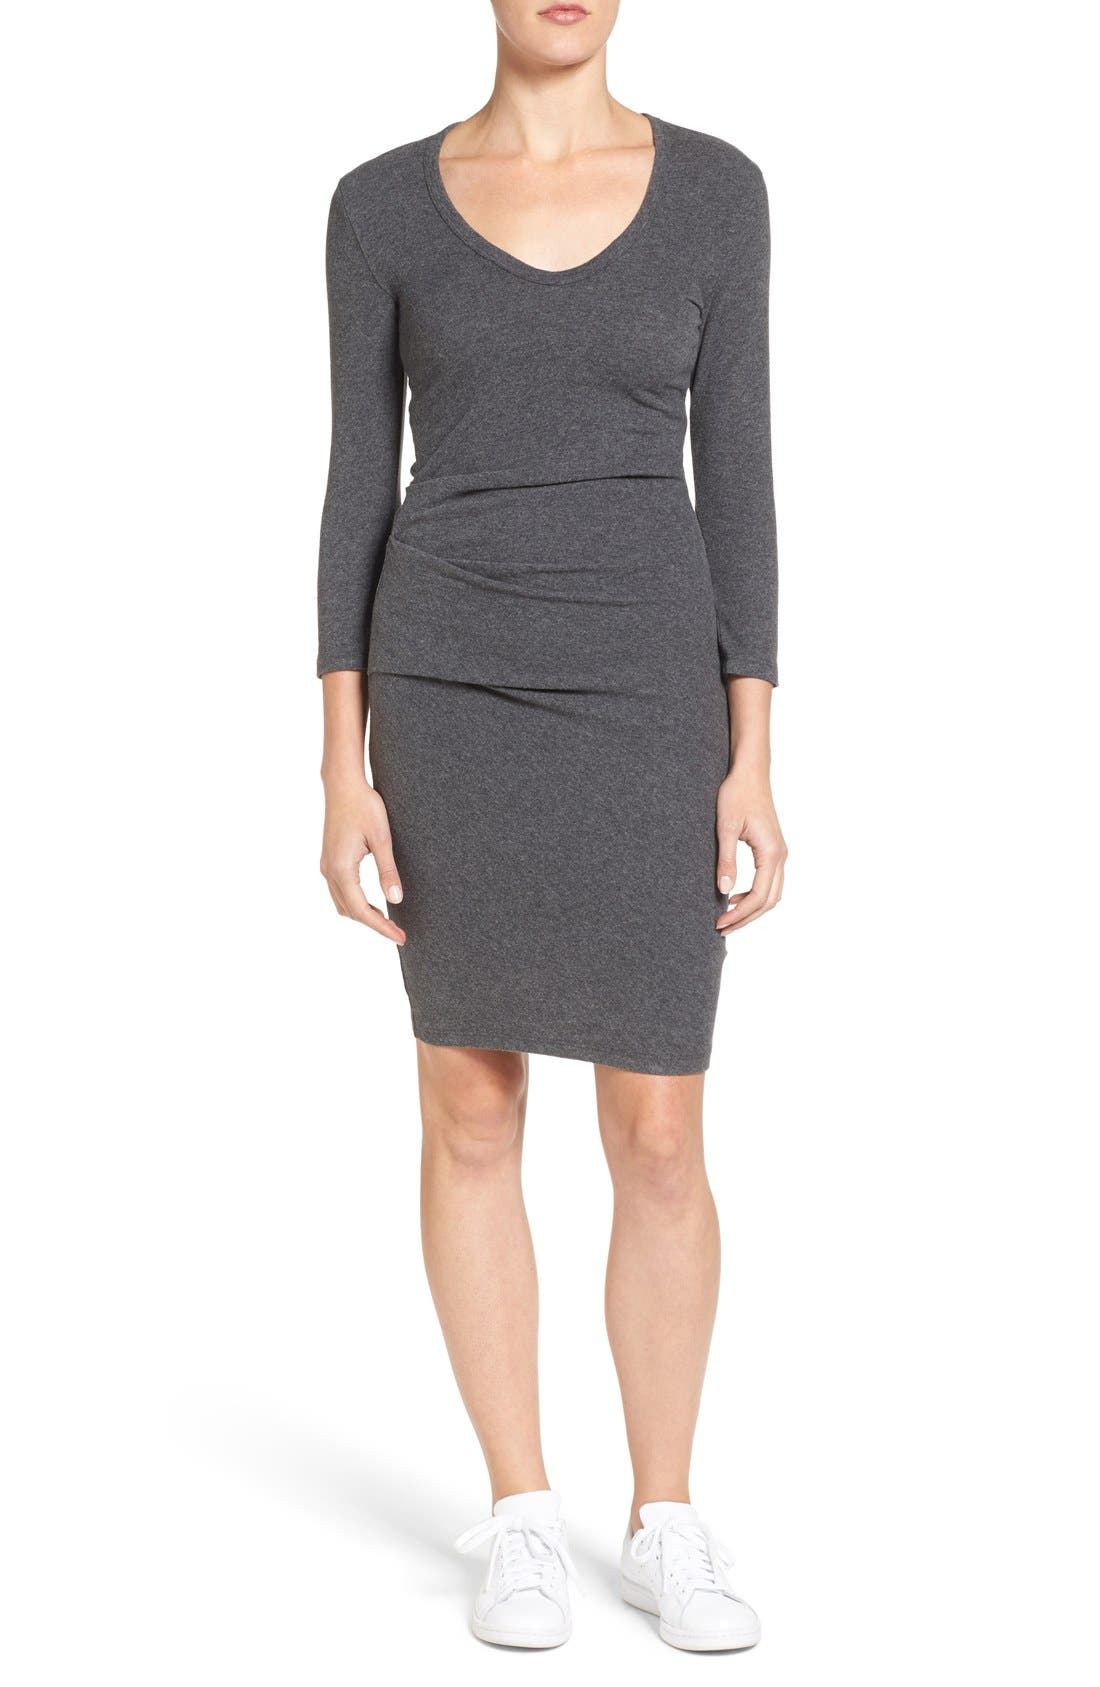 Alternate Image 1 Selected - James Perse Sueded Stretch Jersey Skinny Dress